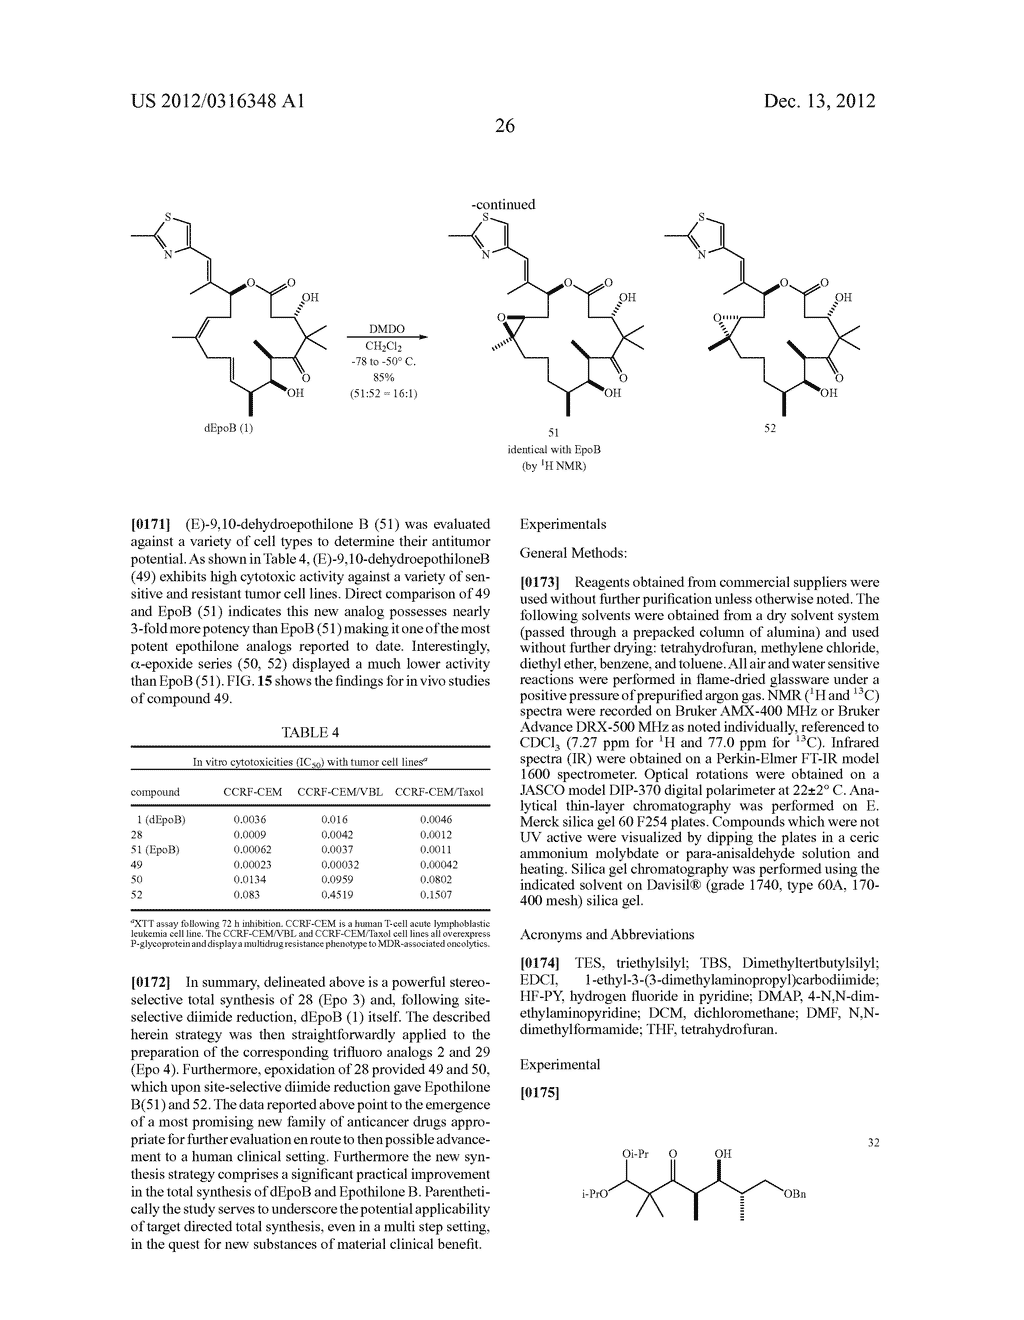 SYNTHESIS OF EPOTHILONES, INTERMEDIATES THERETO AND ANALOGUES THEREOF - diagram, schematic, and image 97